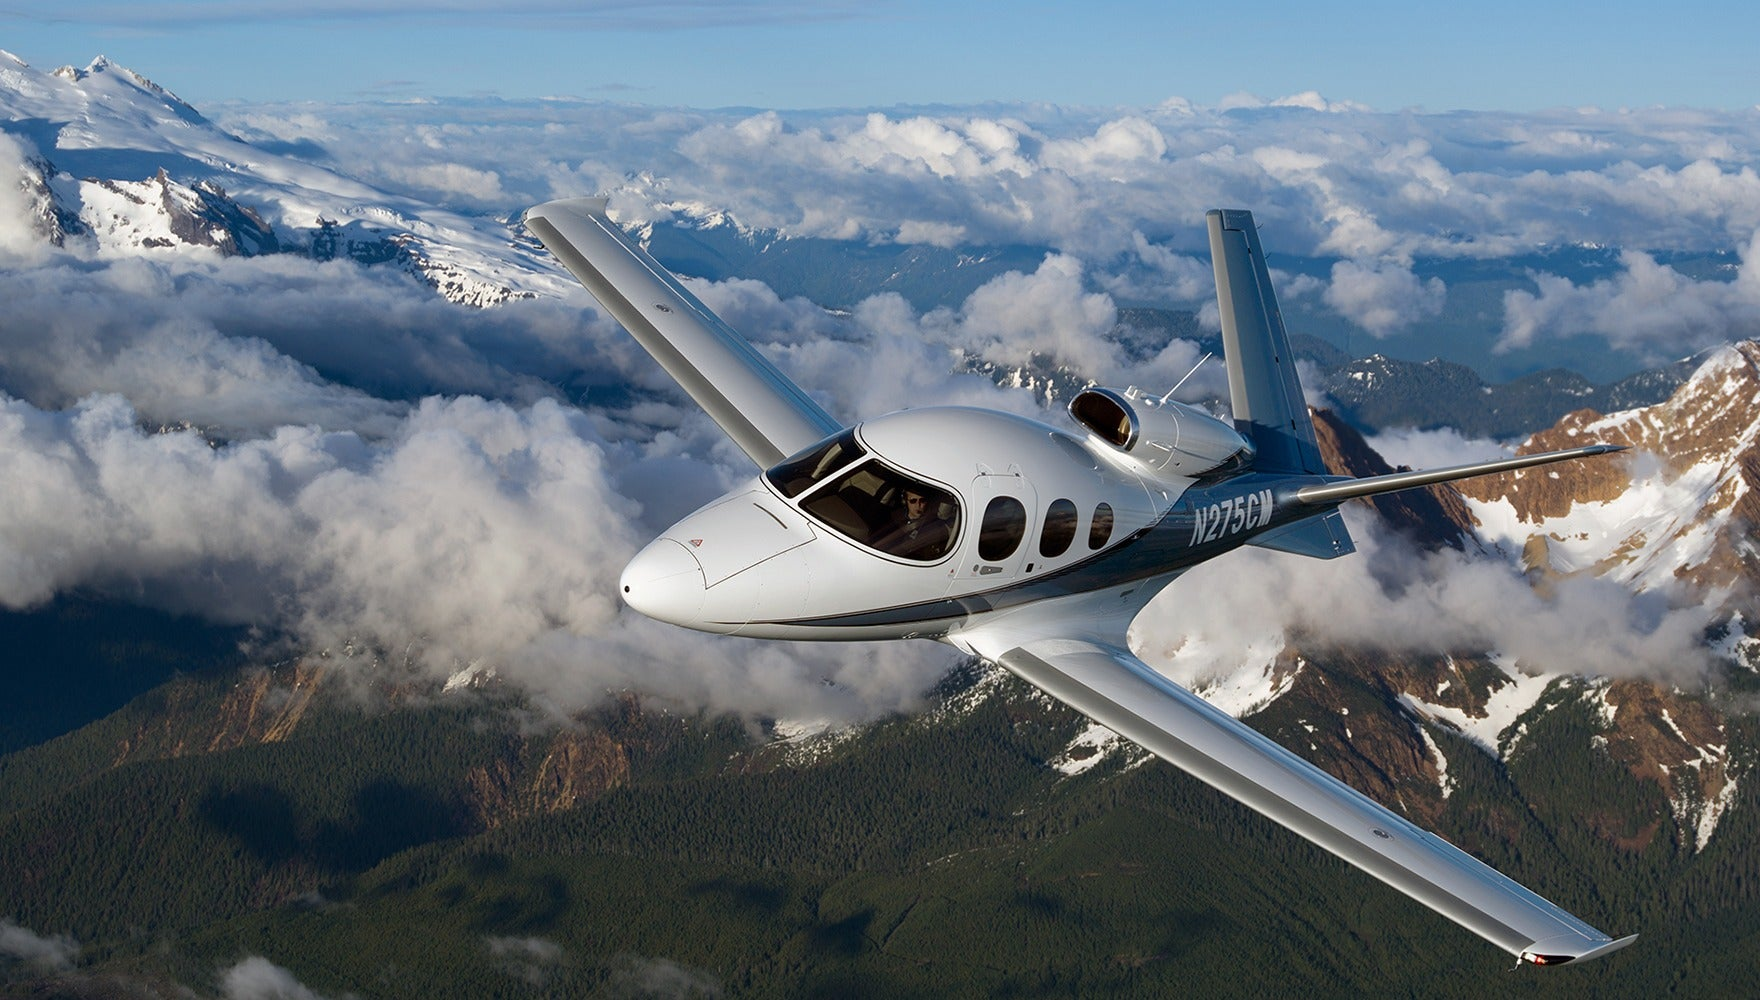 Cirrus Aircraft Unveils G2+ Vision Jet with up to 20% Enhanced Take-Off Performance and InFlight WiFi Connectivity